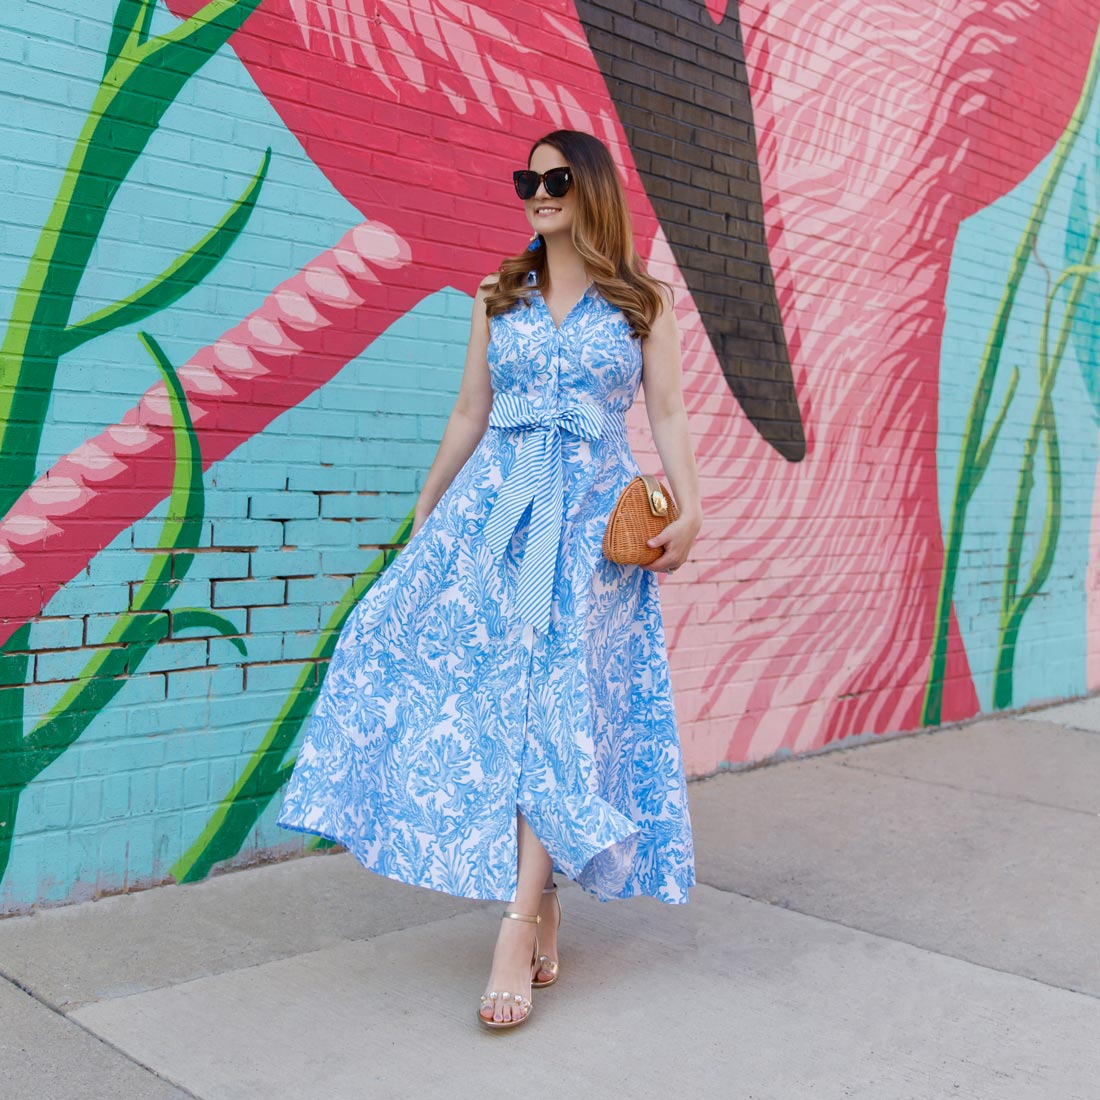 Lilly Pulitzer Chrisella Midi Dress